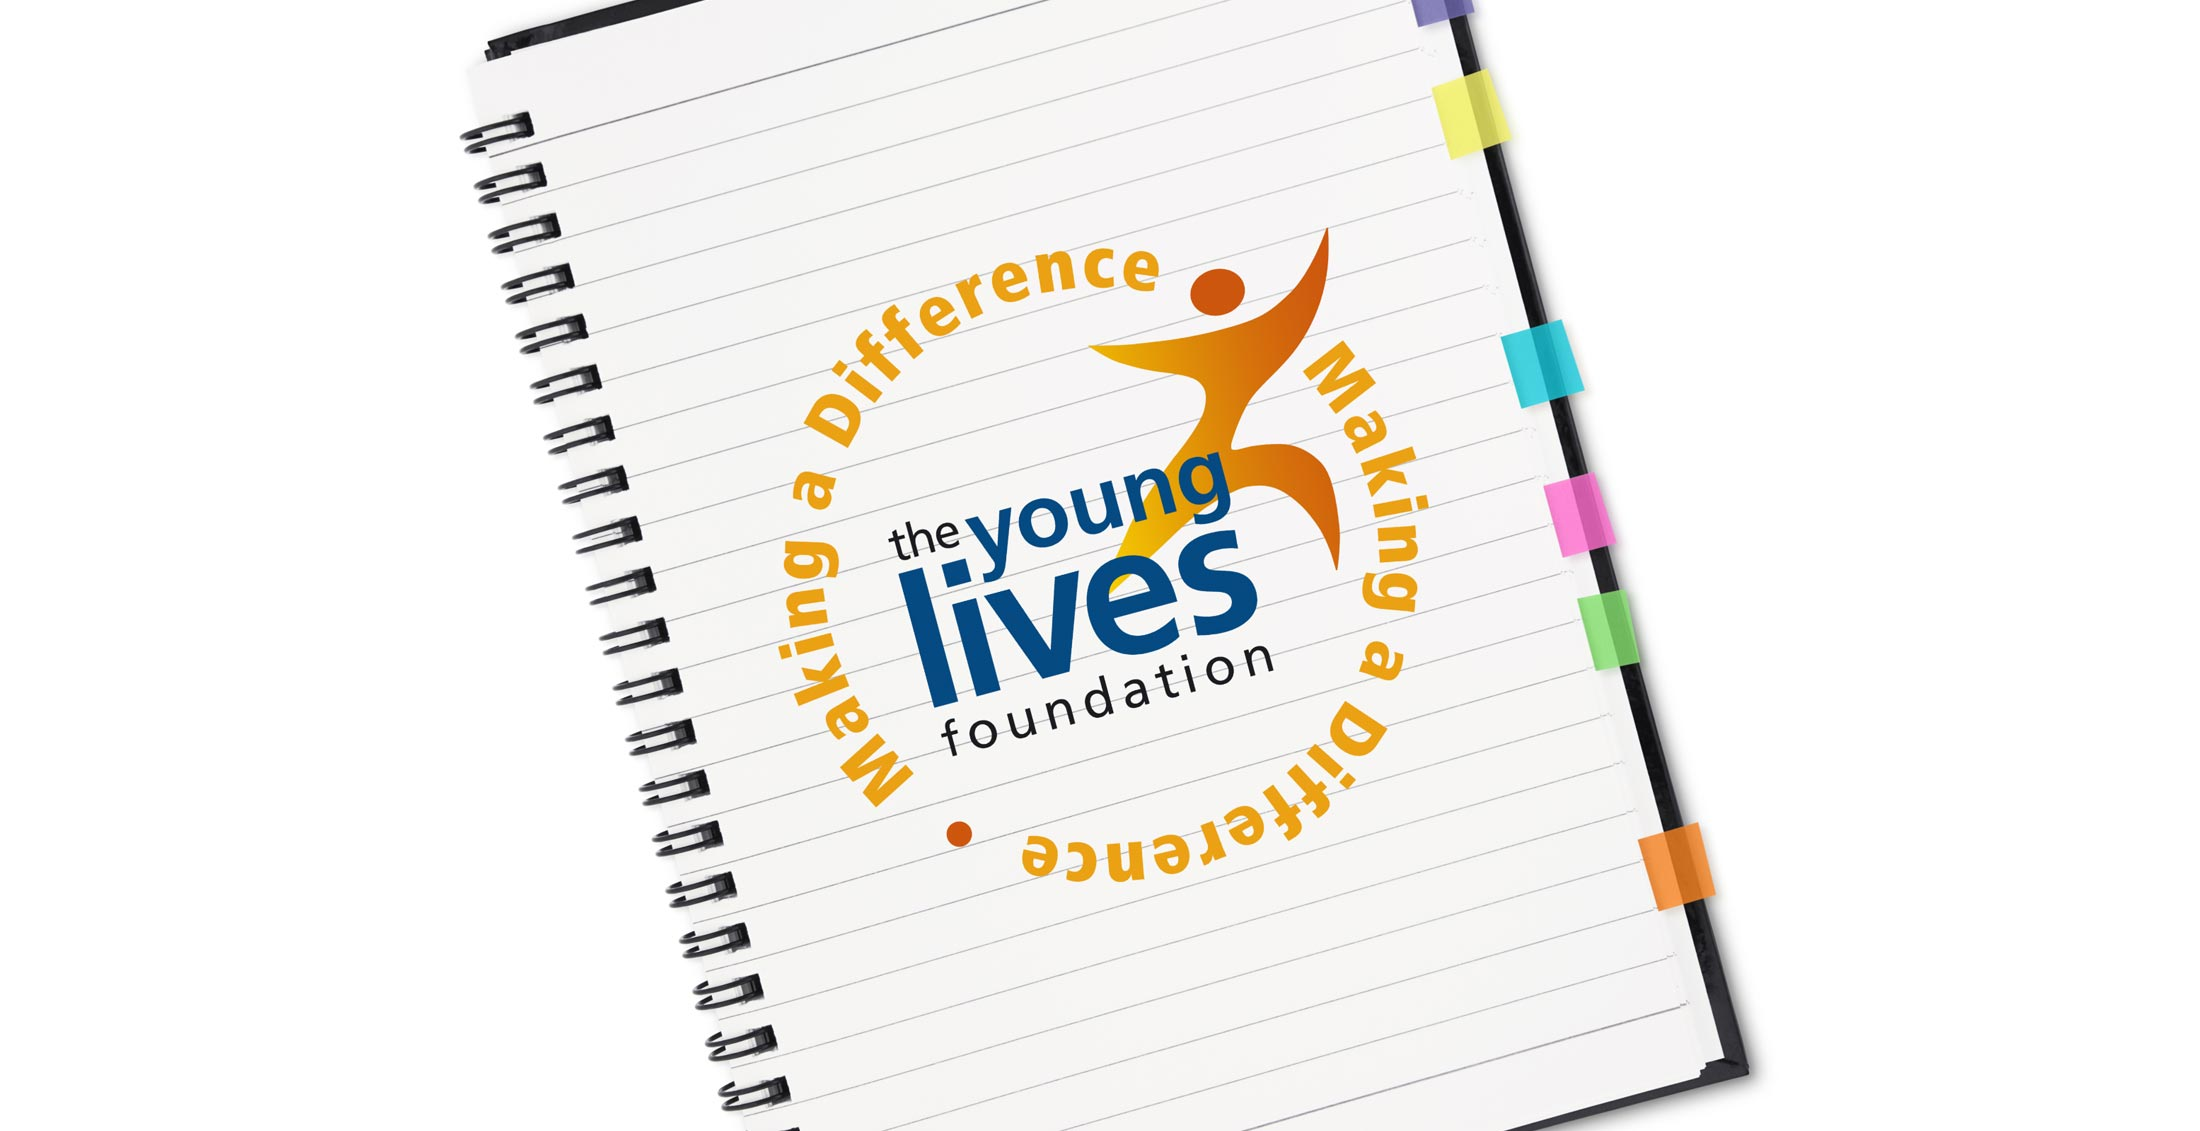 Resources - The Young Lives Foundation